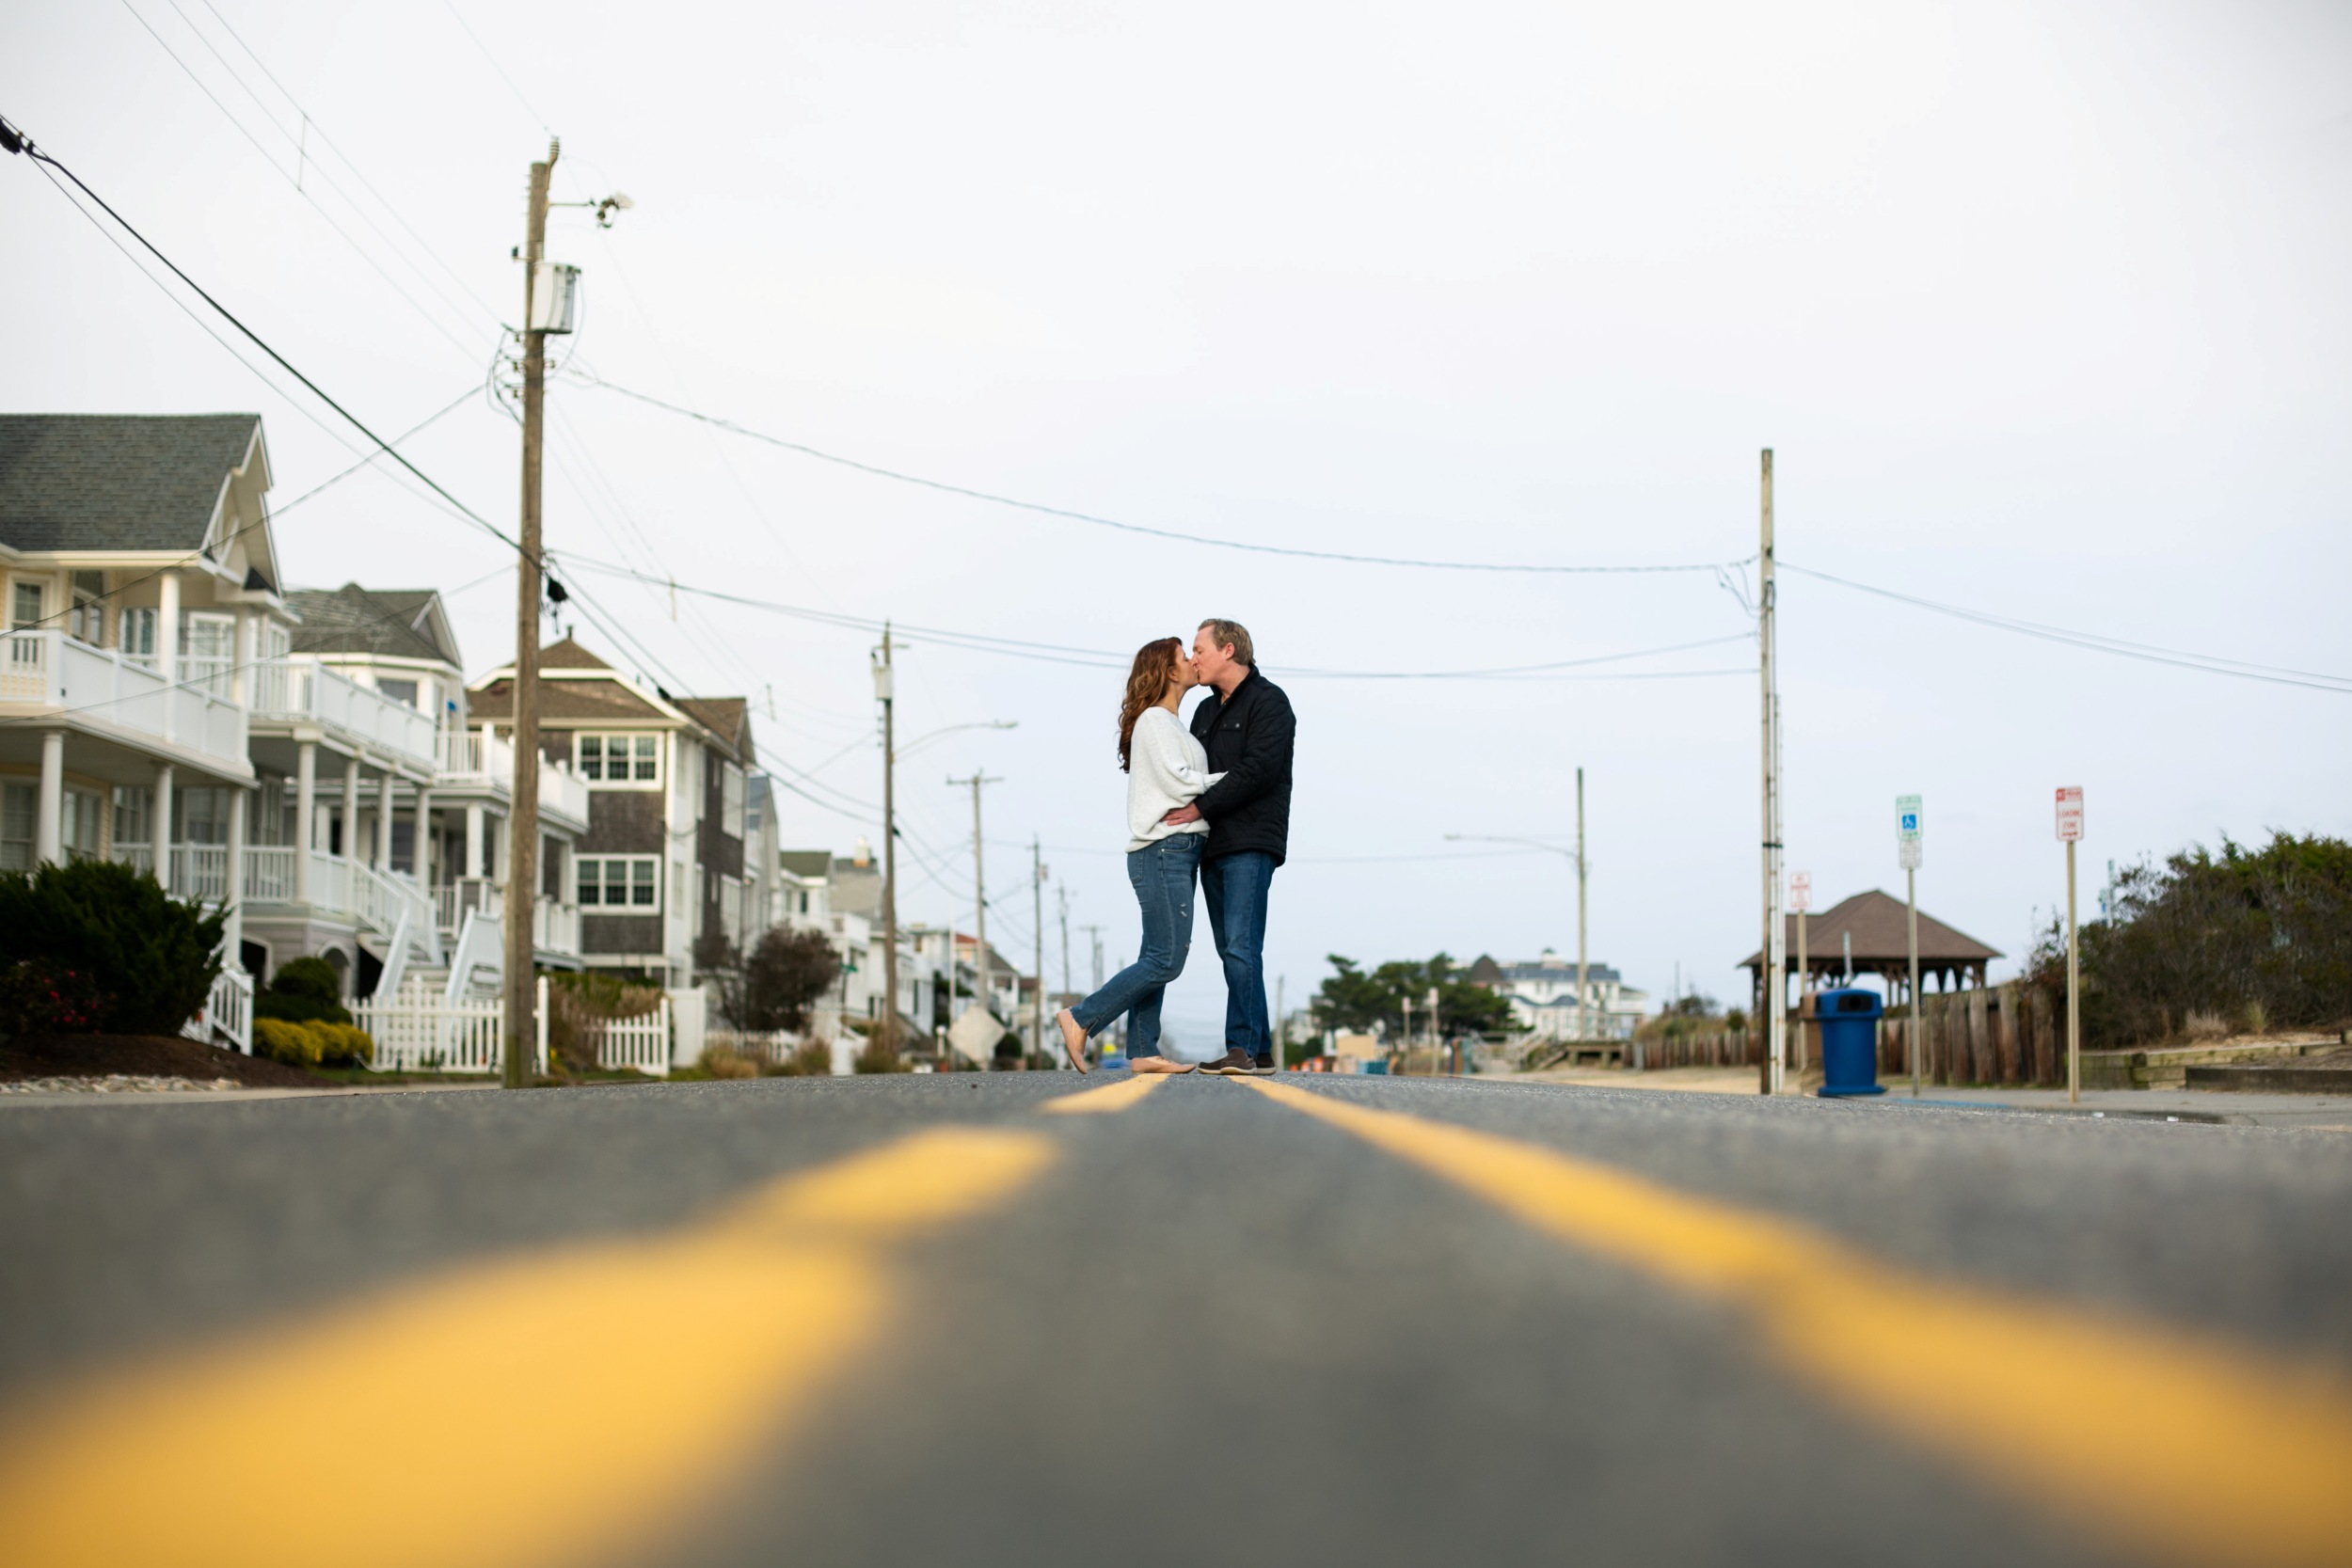 everly tuckahoe ocean city engagement photos  (139 of 139)139.jpg